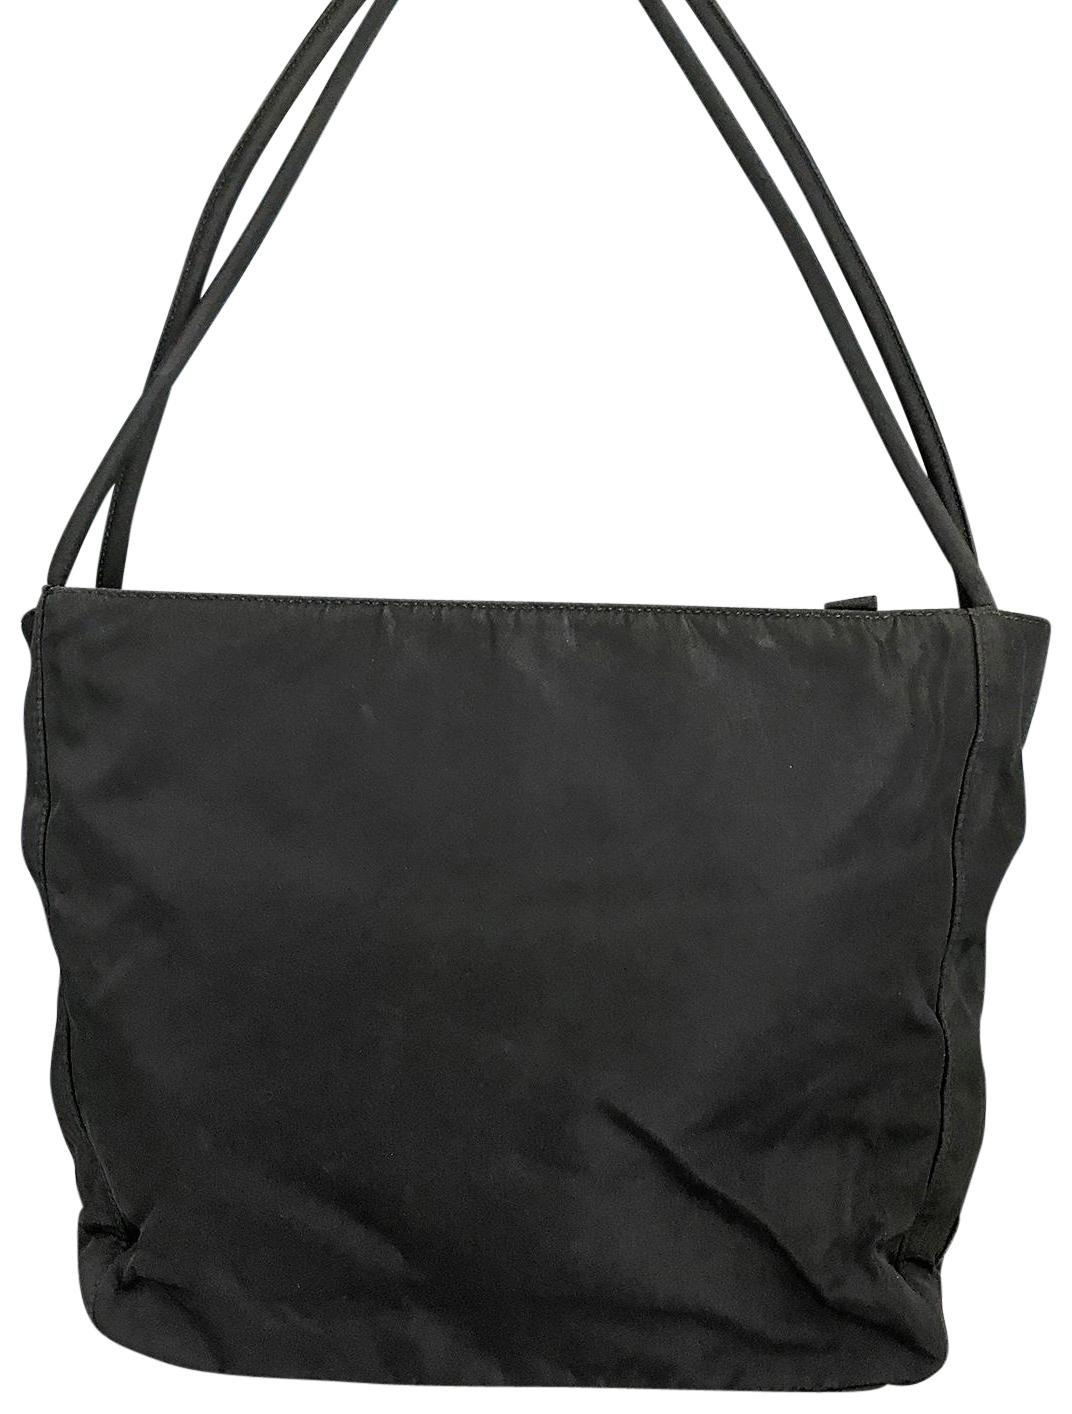 426fe2b0335a 1bd623 f0403 dab06 64364; promo code prada nylon shoulder tote in black  c8728 94ace